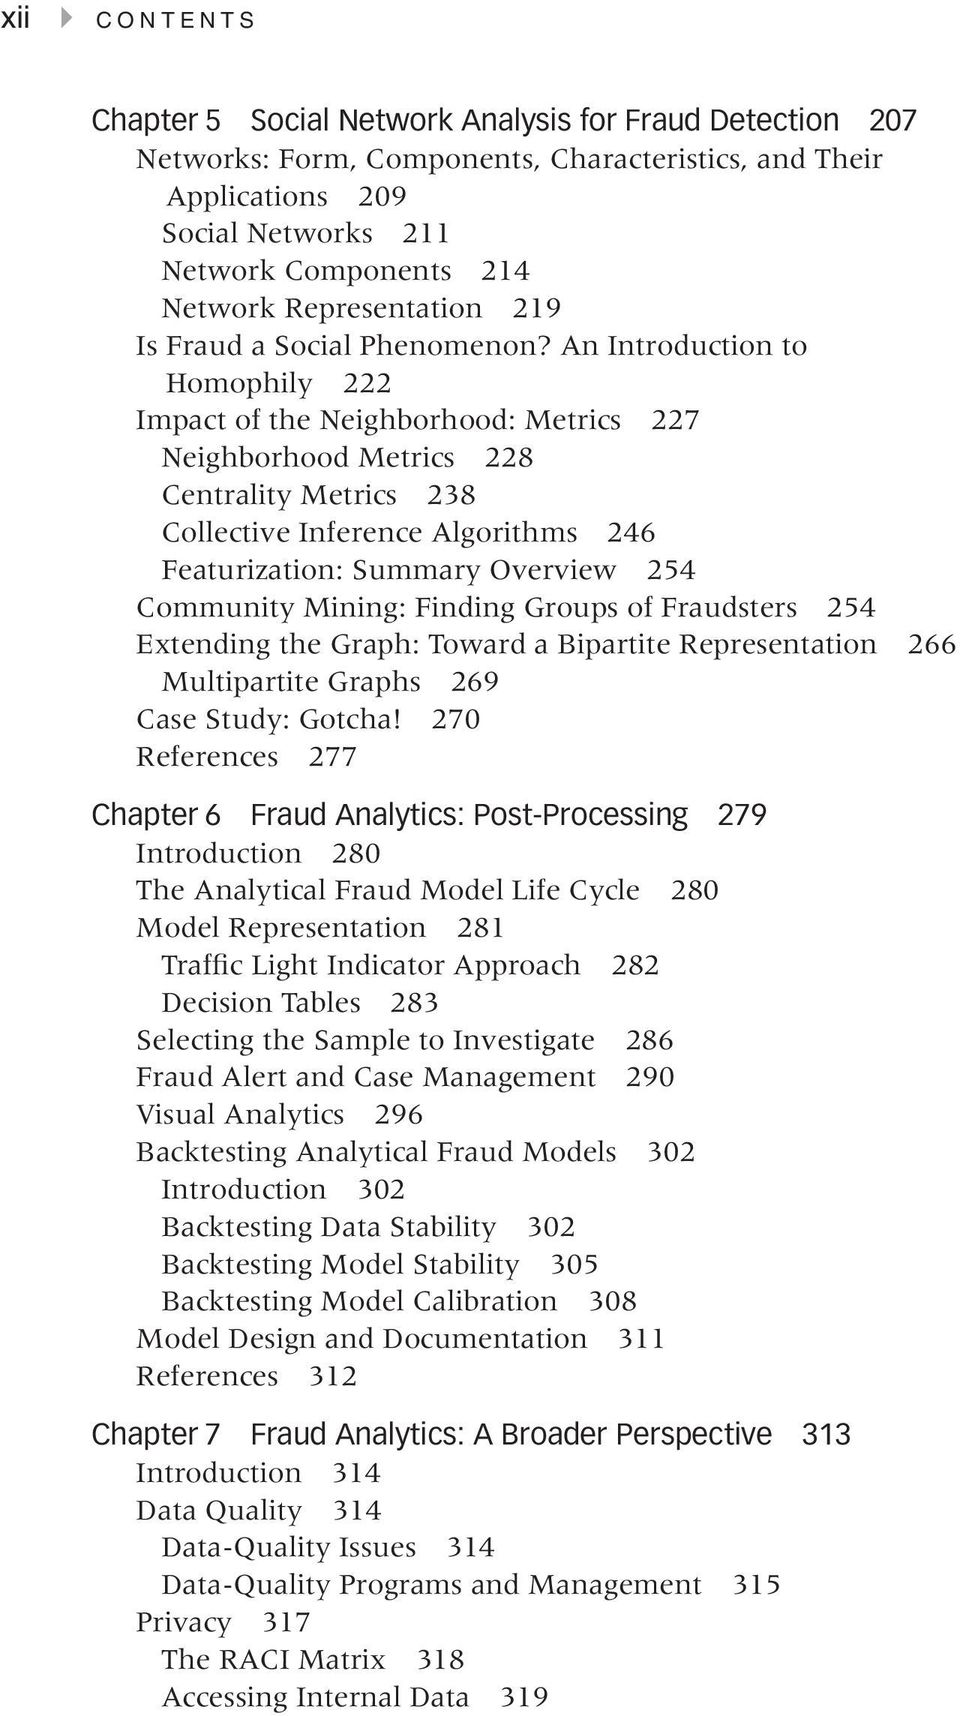 An Introduction to Homophily 222 Impact of the Neighborhood: Metrics 227 Neighborhood Metrics 228 Centrality Metrics 238 Collective Inference Algorithms 246 Featurization: Summary Overview 254